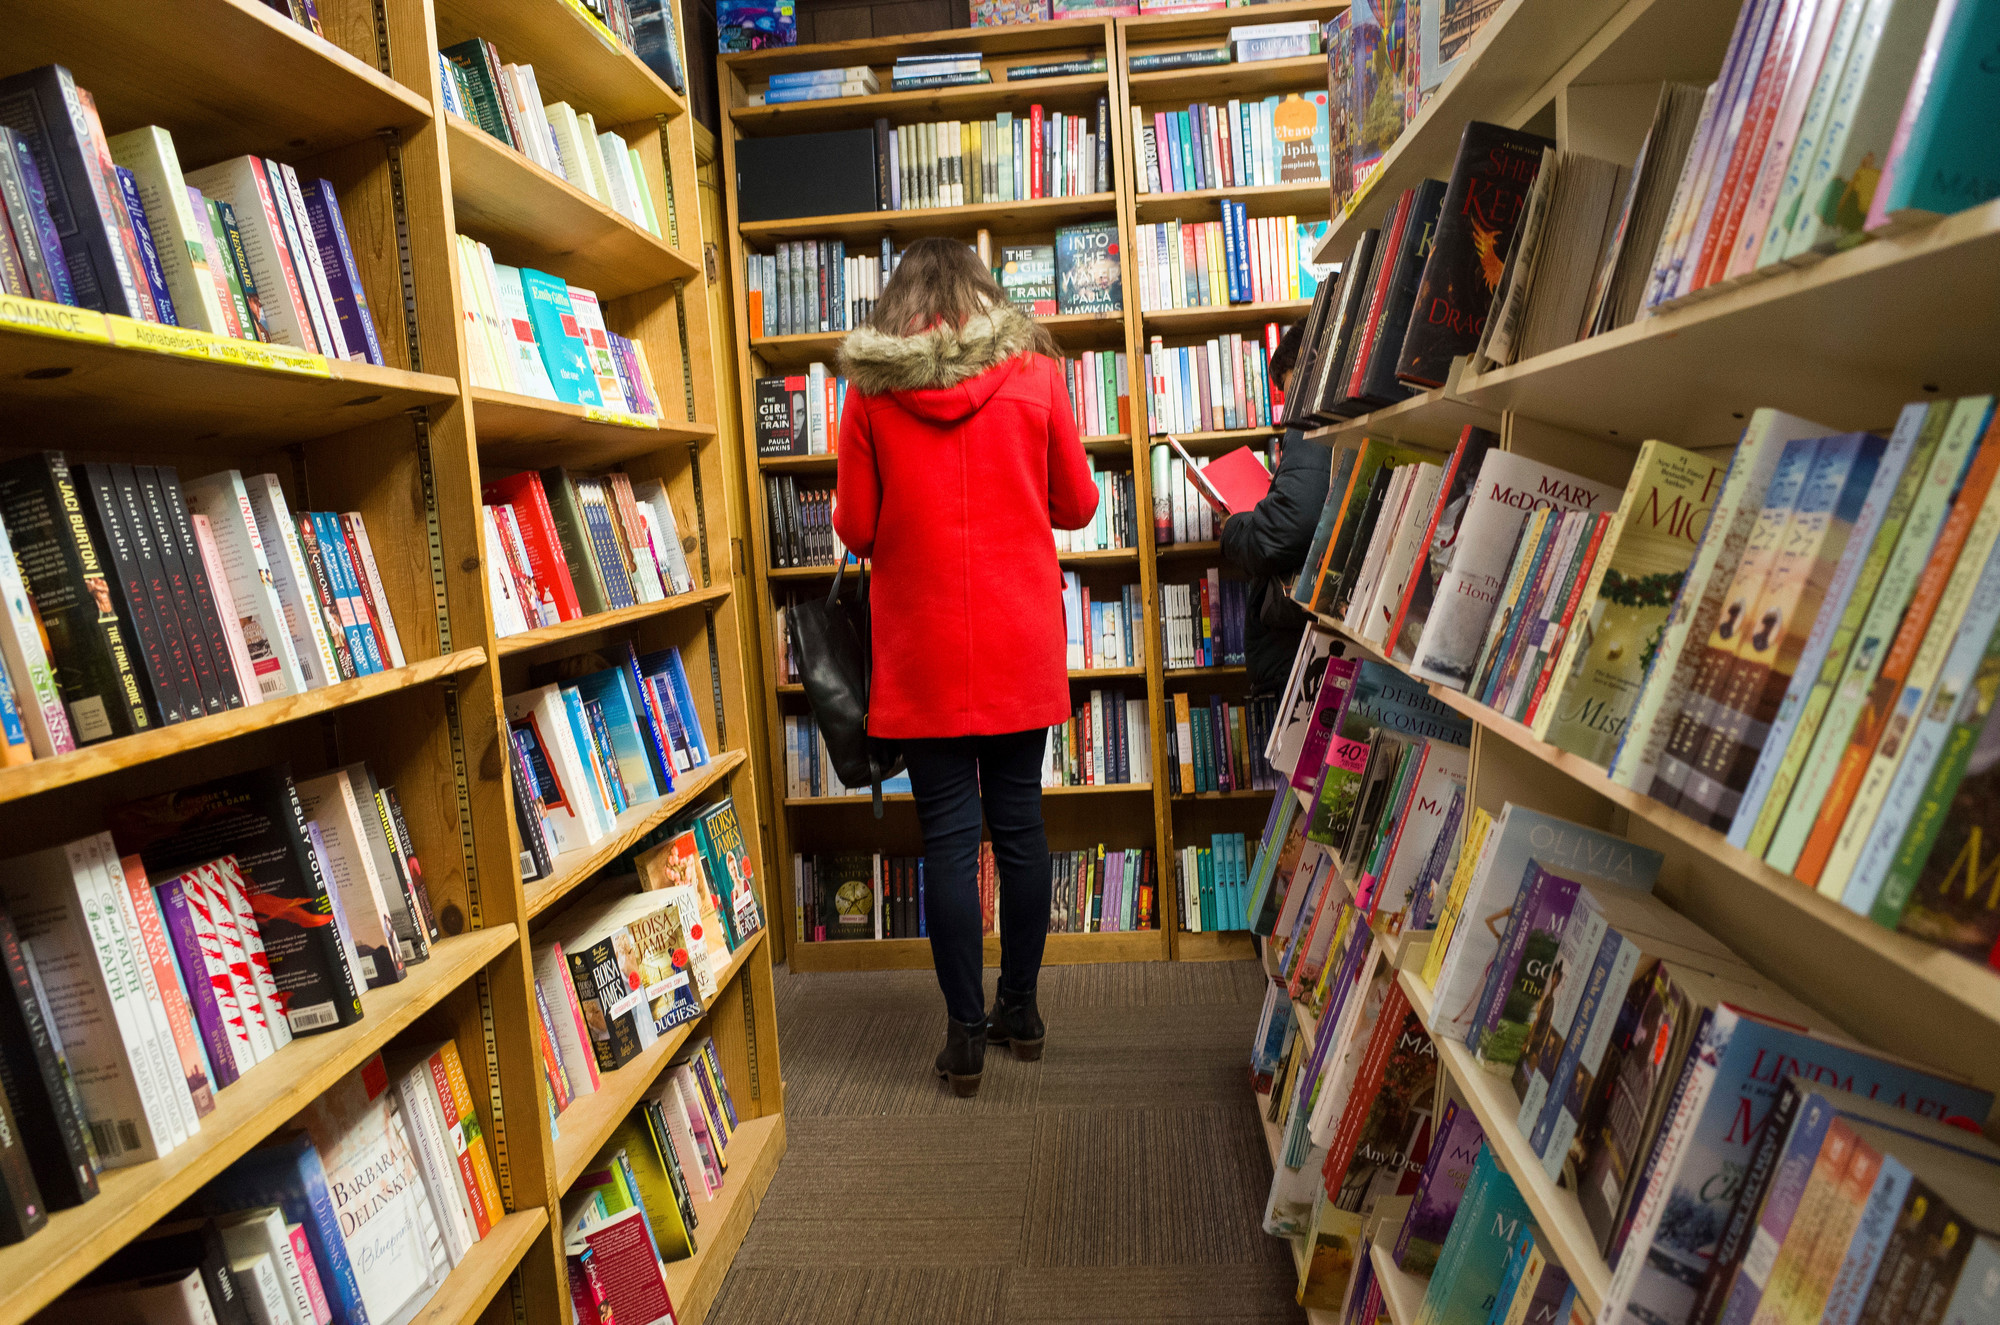 Shoppers browse among the narrow rows of books Feb. 17 at The Book Loft of German Village in Columbus, Ohio. The 40-year-old bookstore features 32 rooms of books.